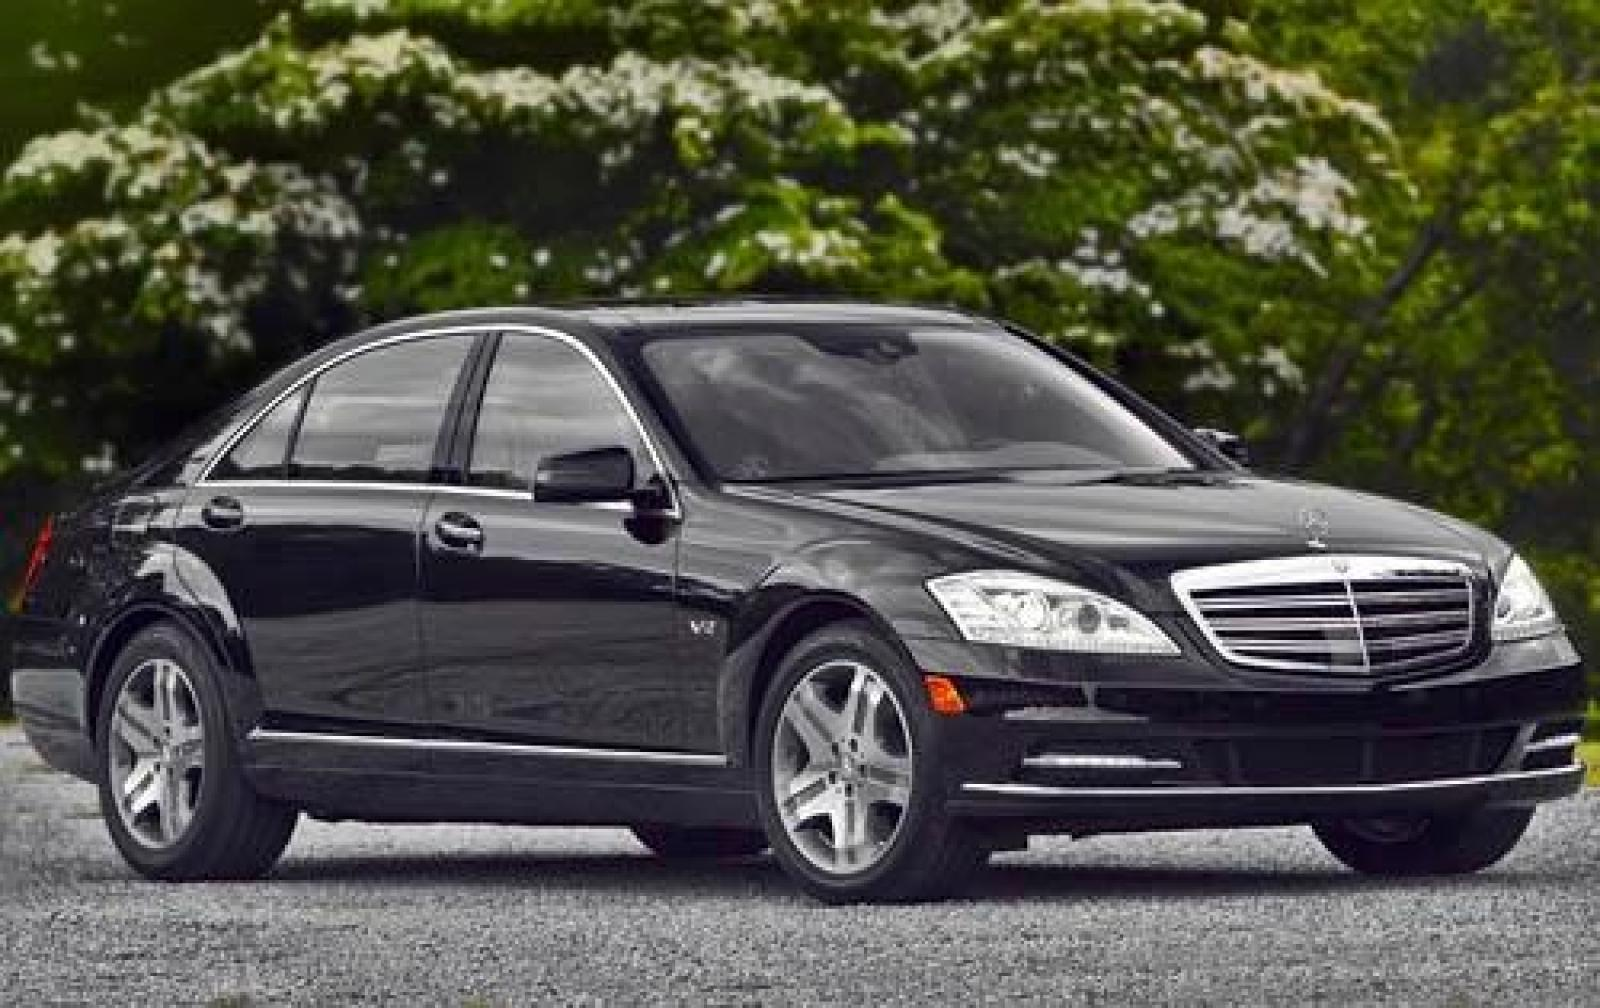 All Types 2010 s class : 2010 Mercedes-Benz S-Class - Information and photos - ZombieDrive